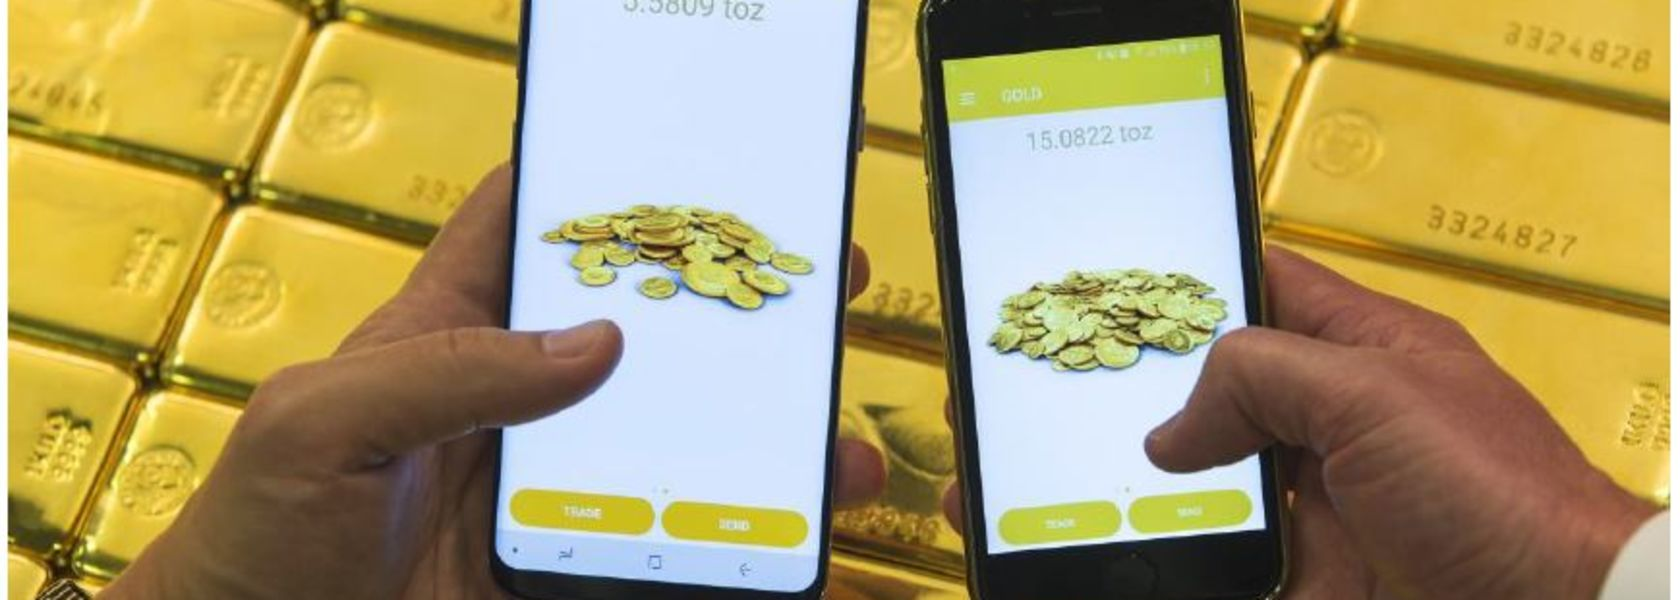 Perth Mint launches app